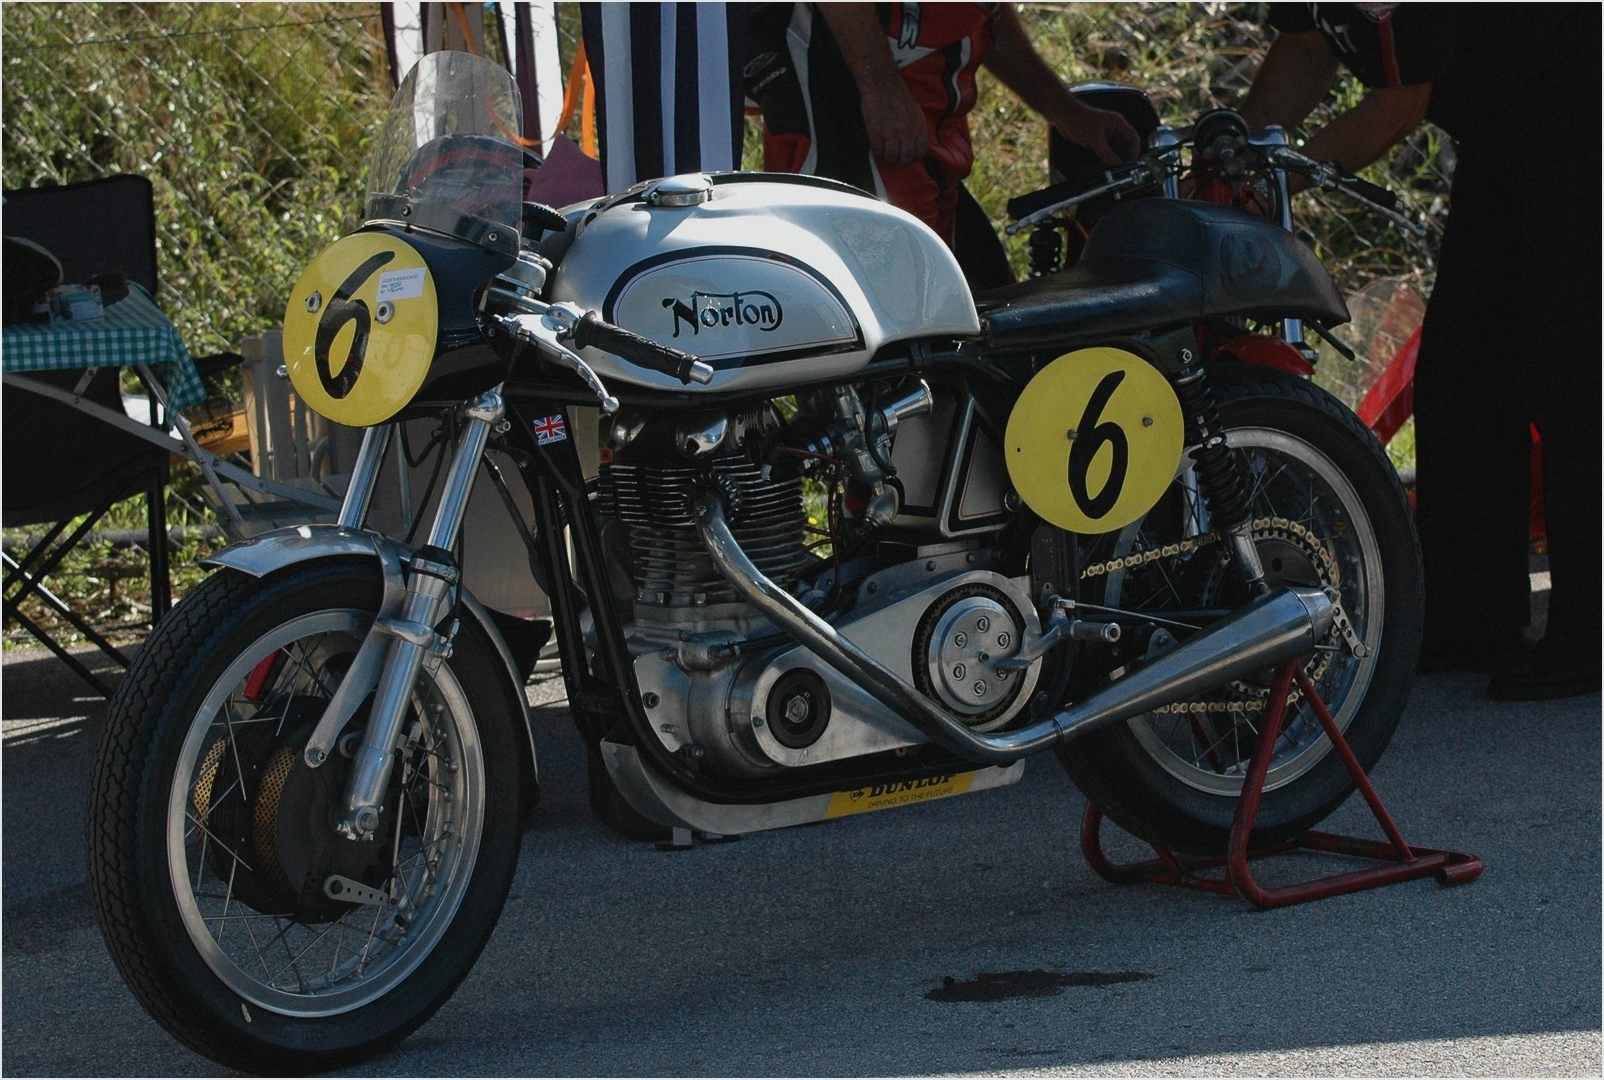 Norton Cafe Racer 750 2004 images #118162